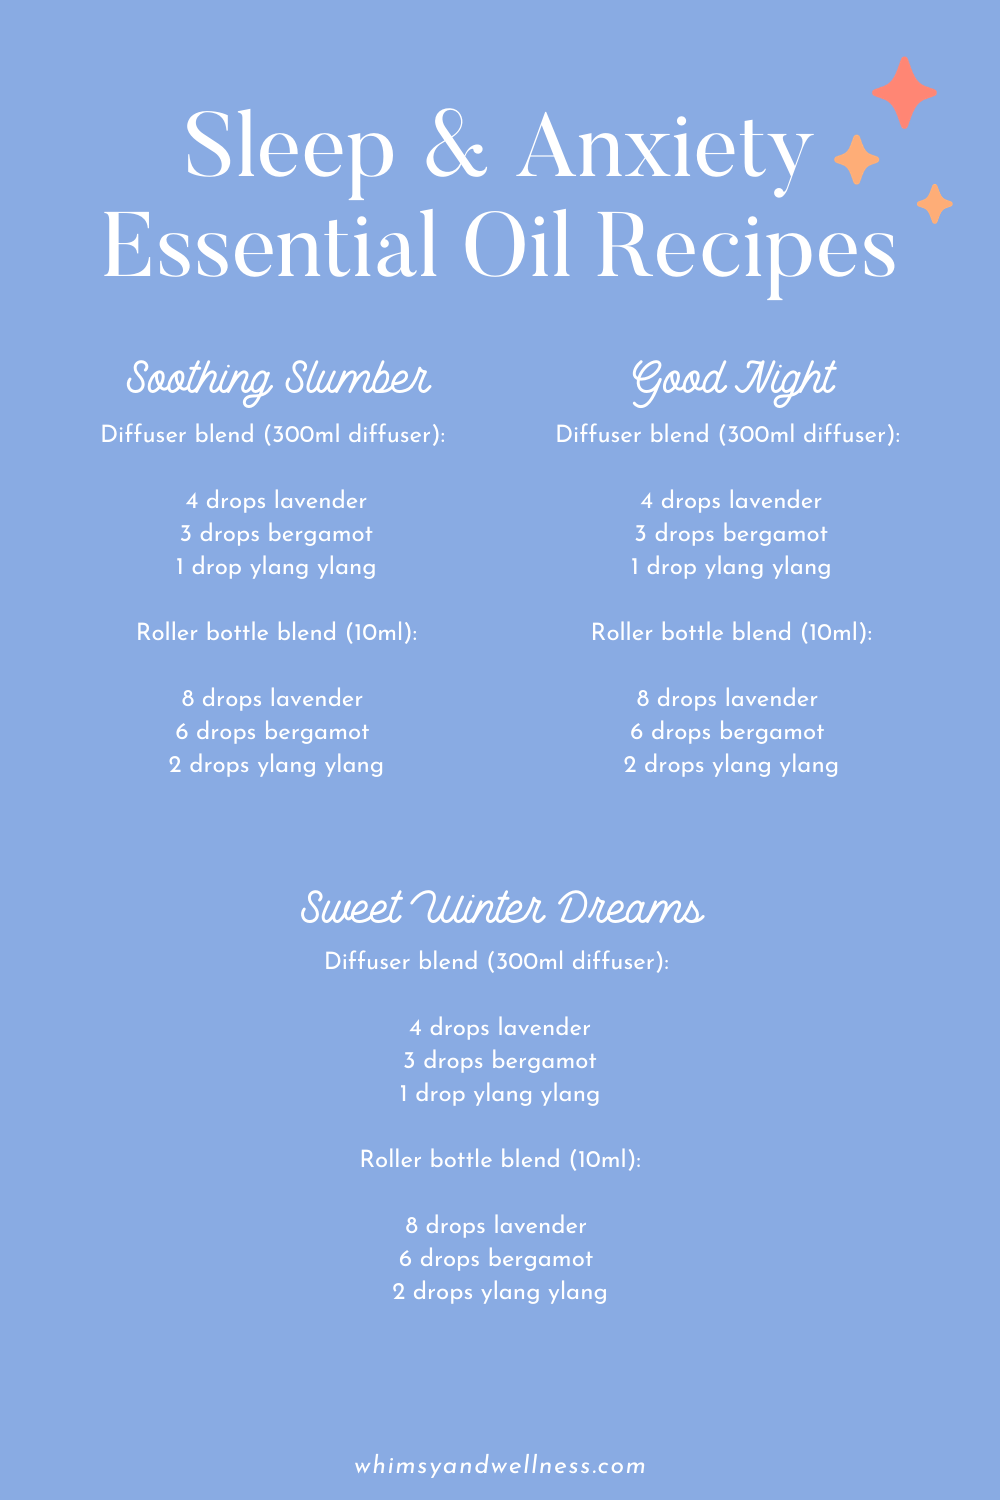 Sleep and Anxiety Essential Oil Recipes